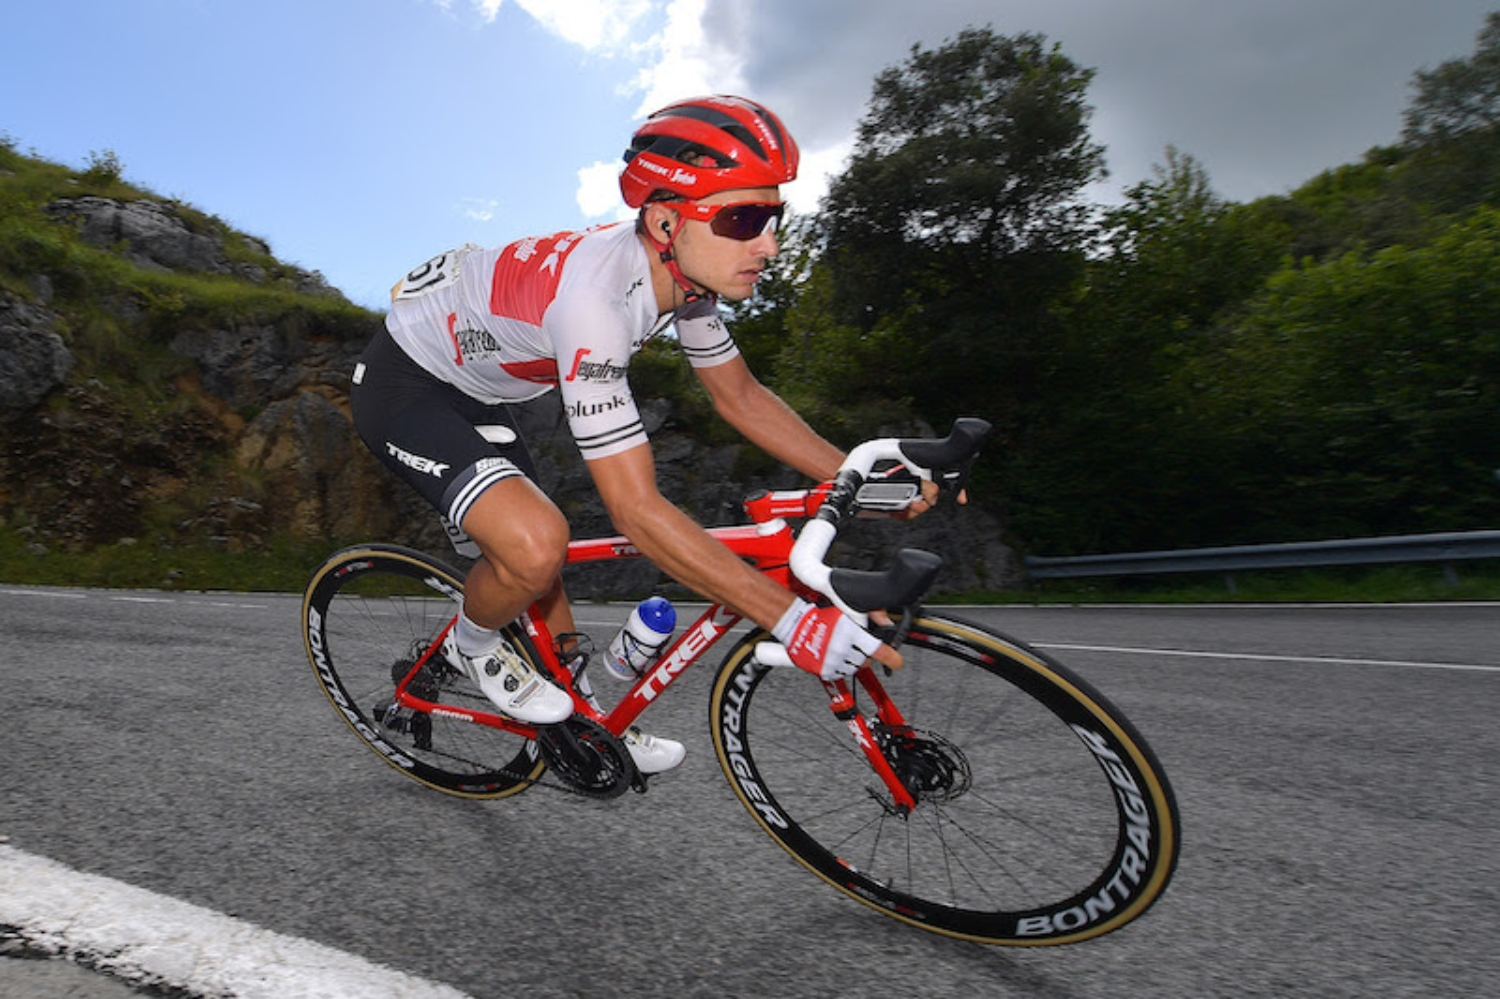 LOS MACHUCOS, SPAIN - SEPTEMBER 06: Gianluca Brambilla of Italy and Team Trek-Segafredo / during the 74th Tour of Spain 2019, Stage 13 a 166,4km stage from Bilbao to Alto de Los Machucos - Monumento Vaca Pasiega 880m / #LaVuelta19 / @lavuelta / on September 06, 2019 in Los Machucos. Monumento Vaca Pasiega, Spain. (Photo by Justin Setterfield/Getty Images)